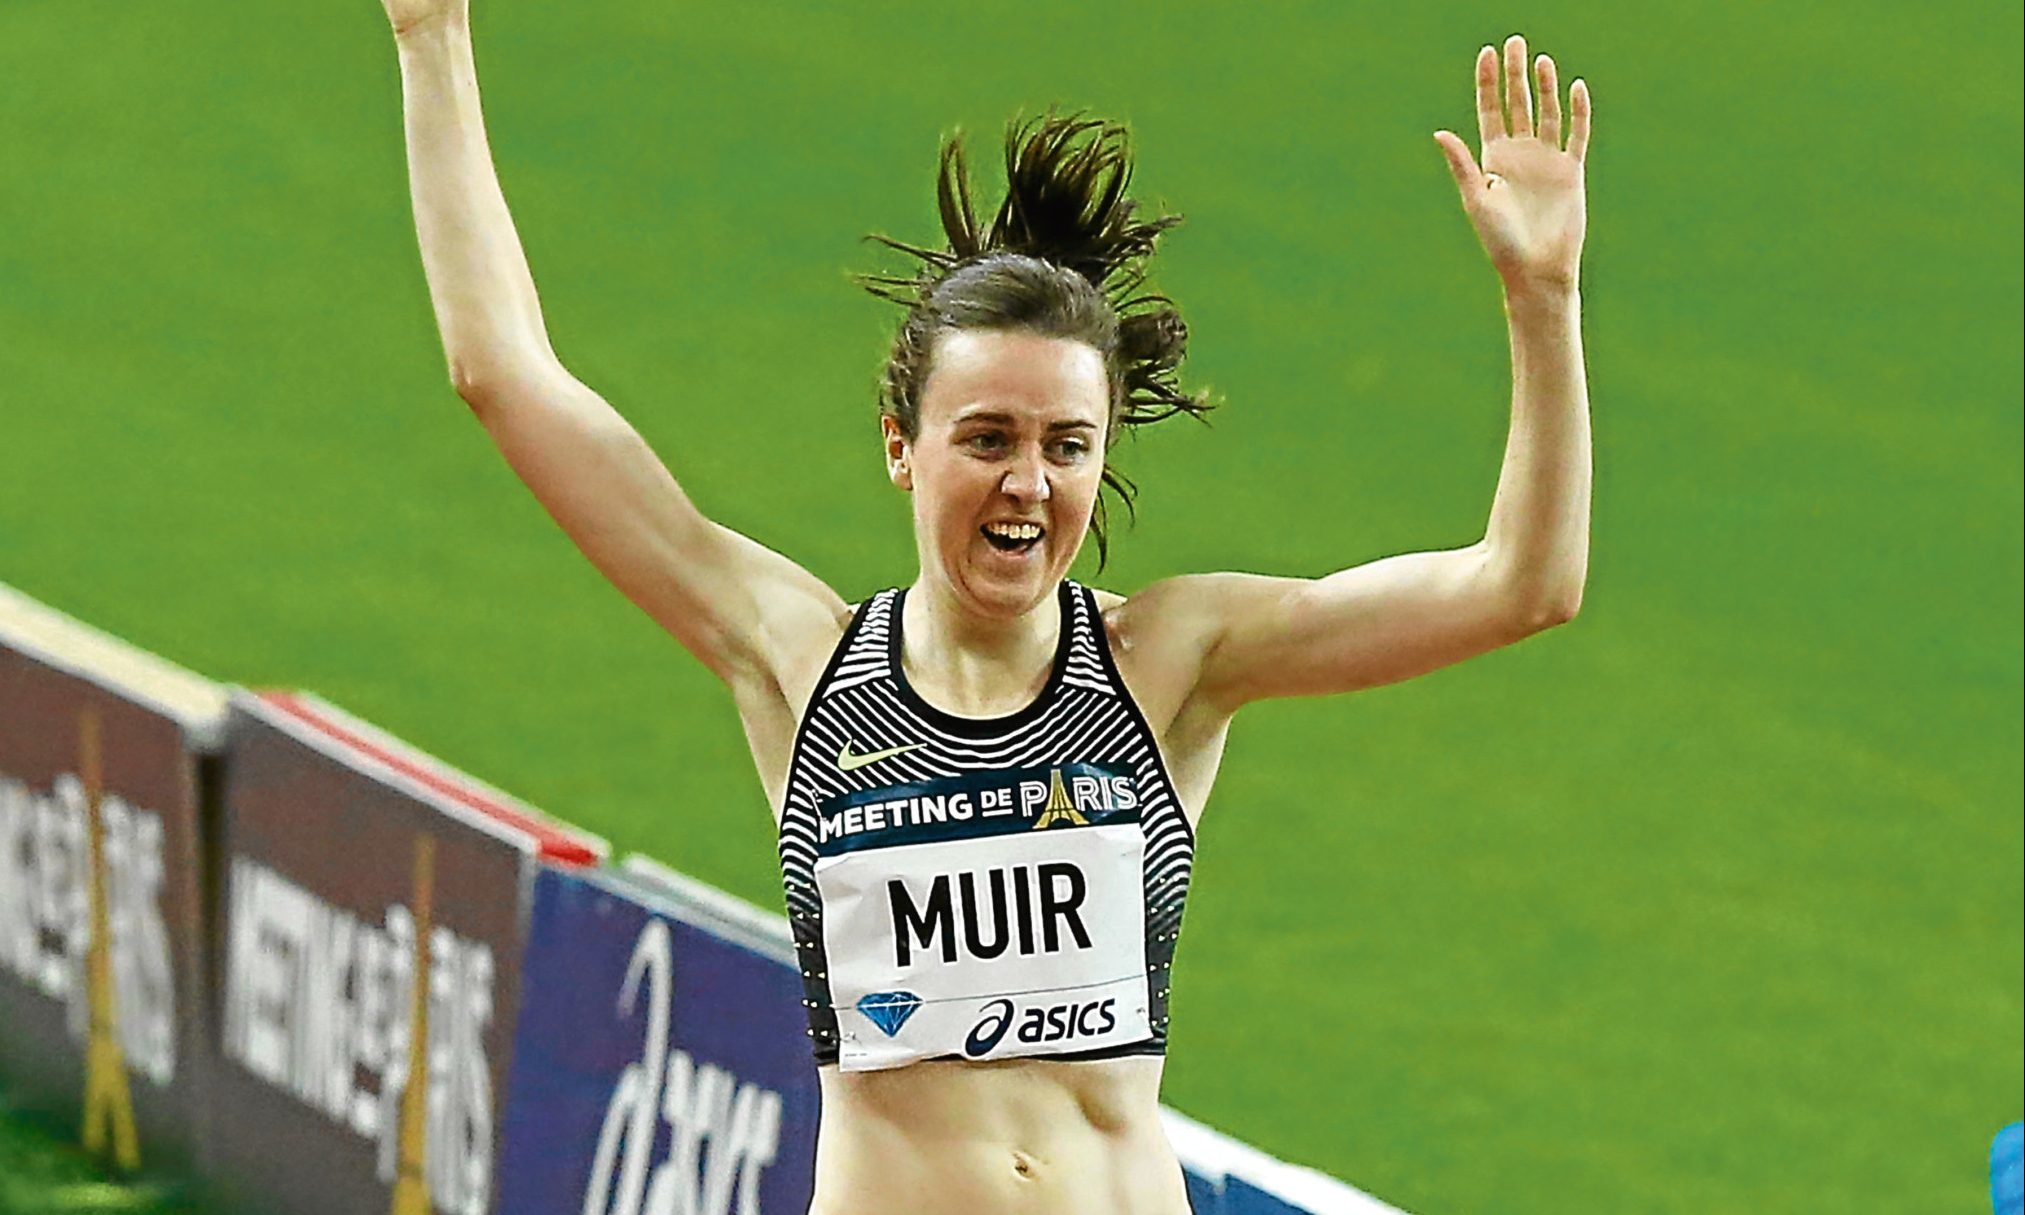 Laura Muir crosses the finish line to win the women's 1,500m event at the IAAF Diamond League athletics meeting at Stade de France stadium.